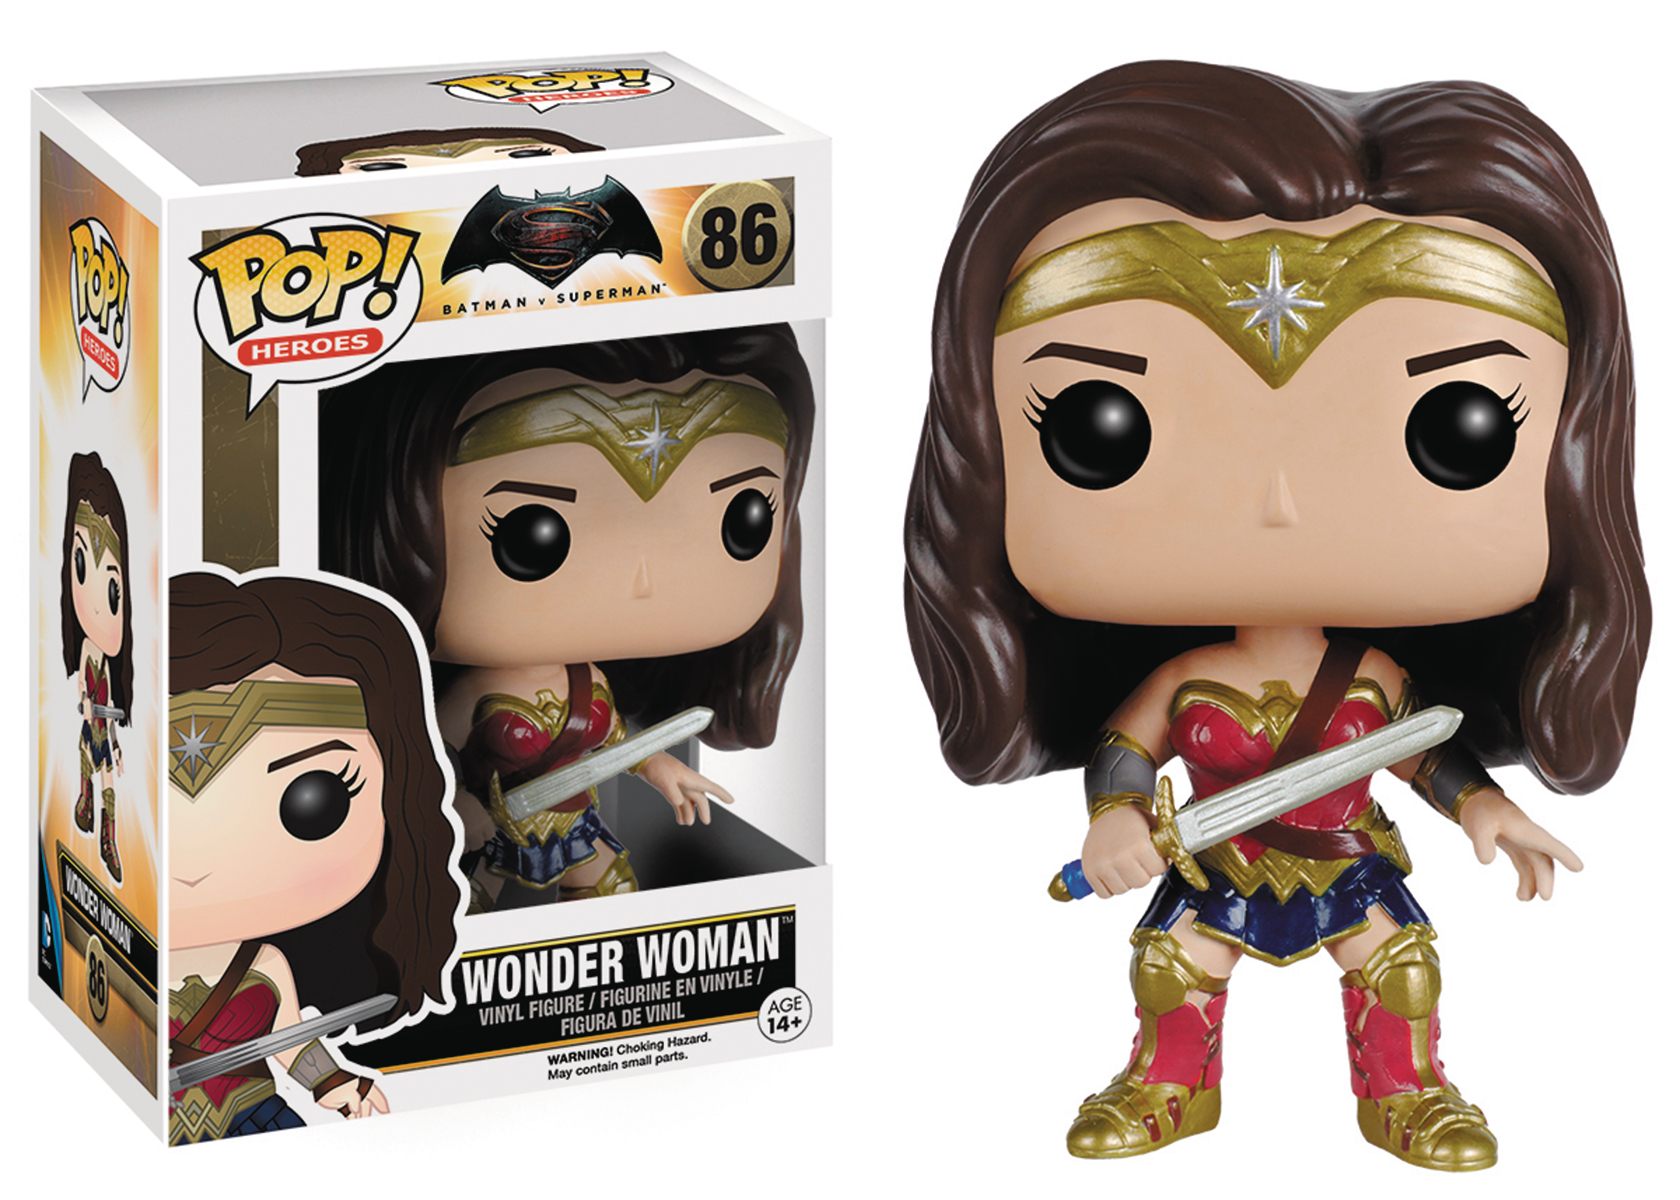 POP BVS WONDER WOMAN VINYL FIG